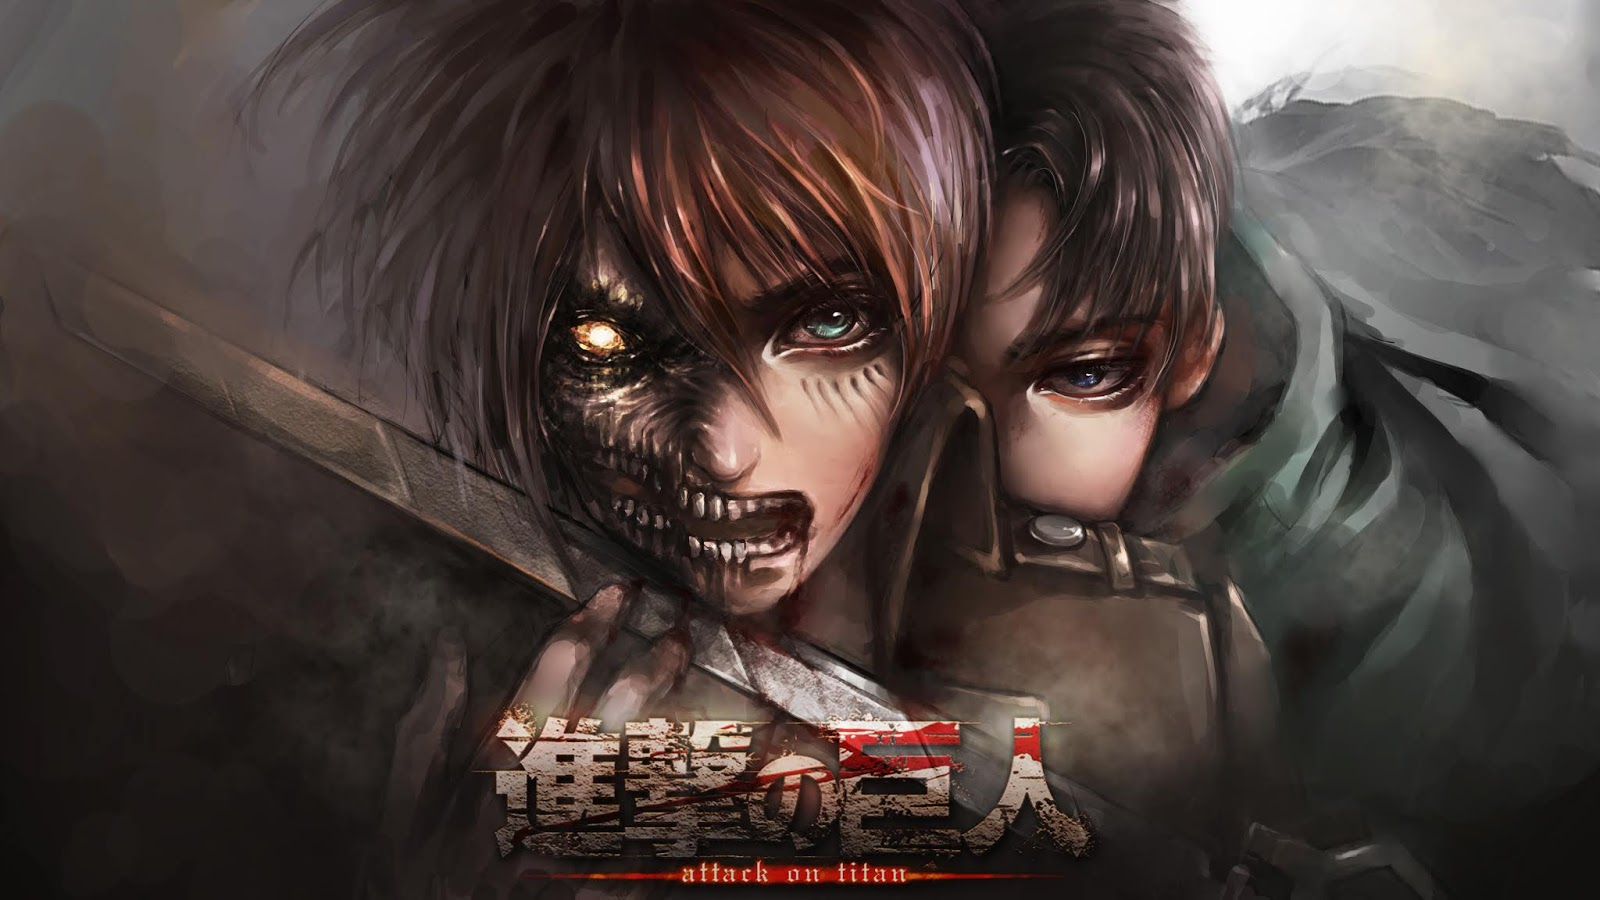 Images Of Attack On Titan Movie 1 Crimson Bow And Arrow Dub